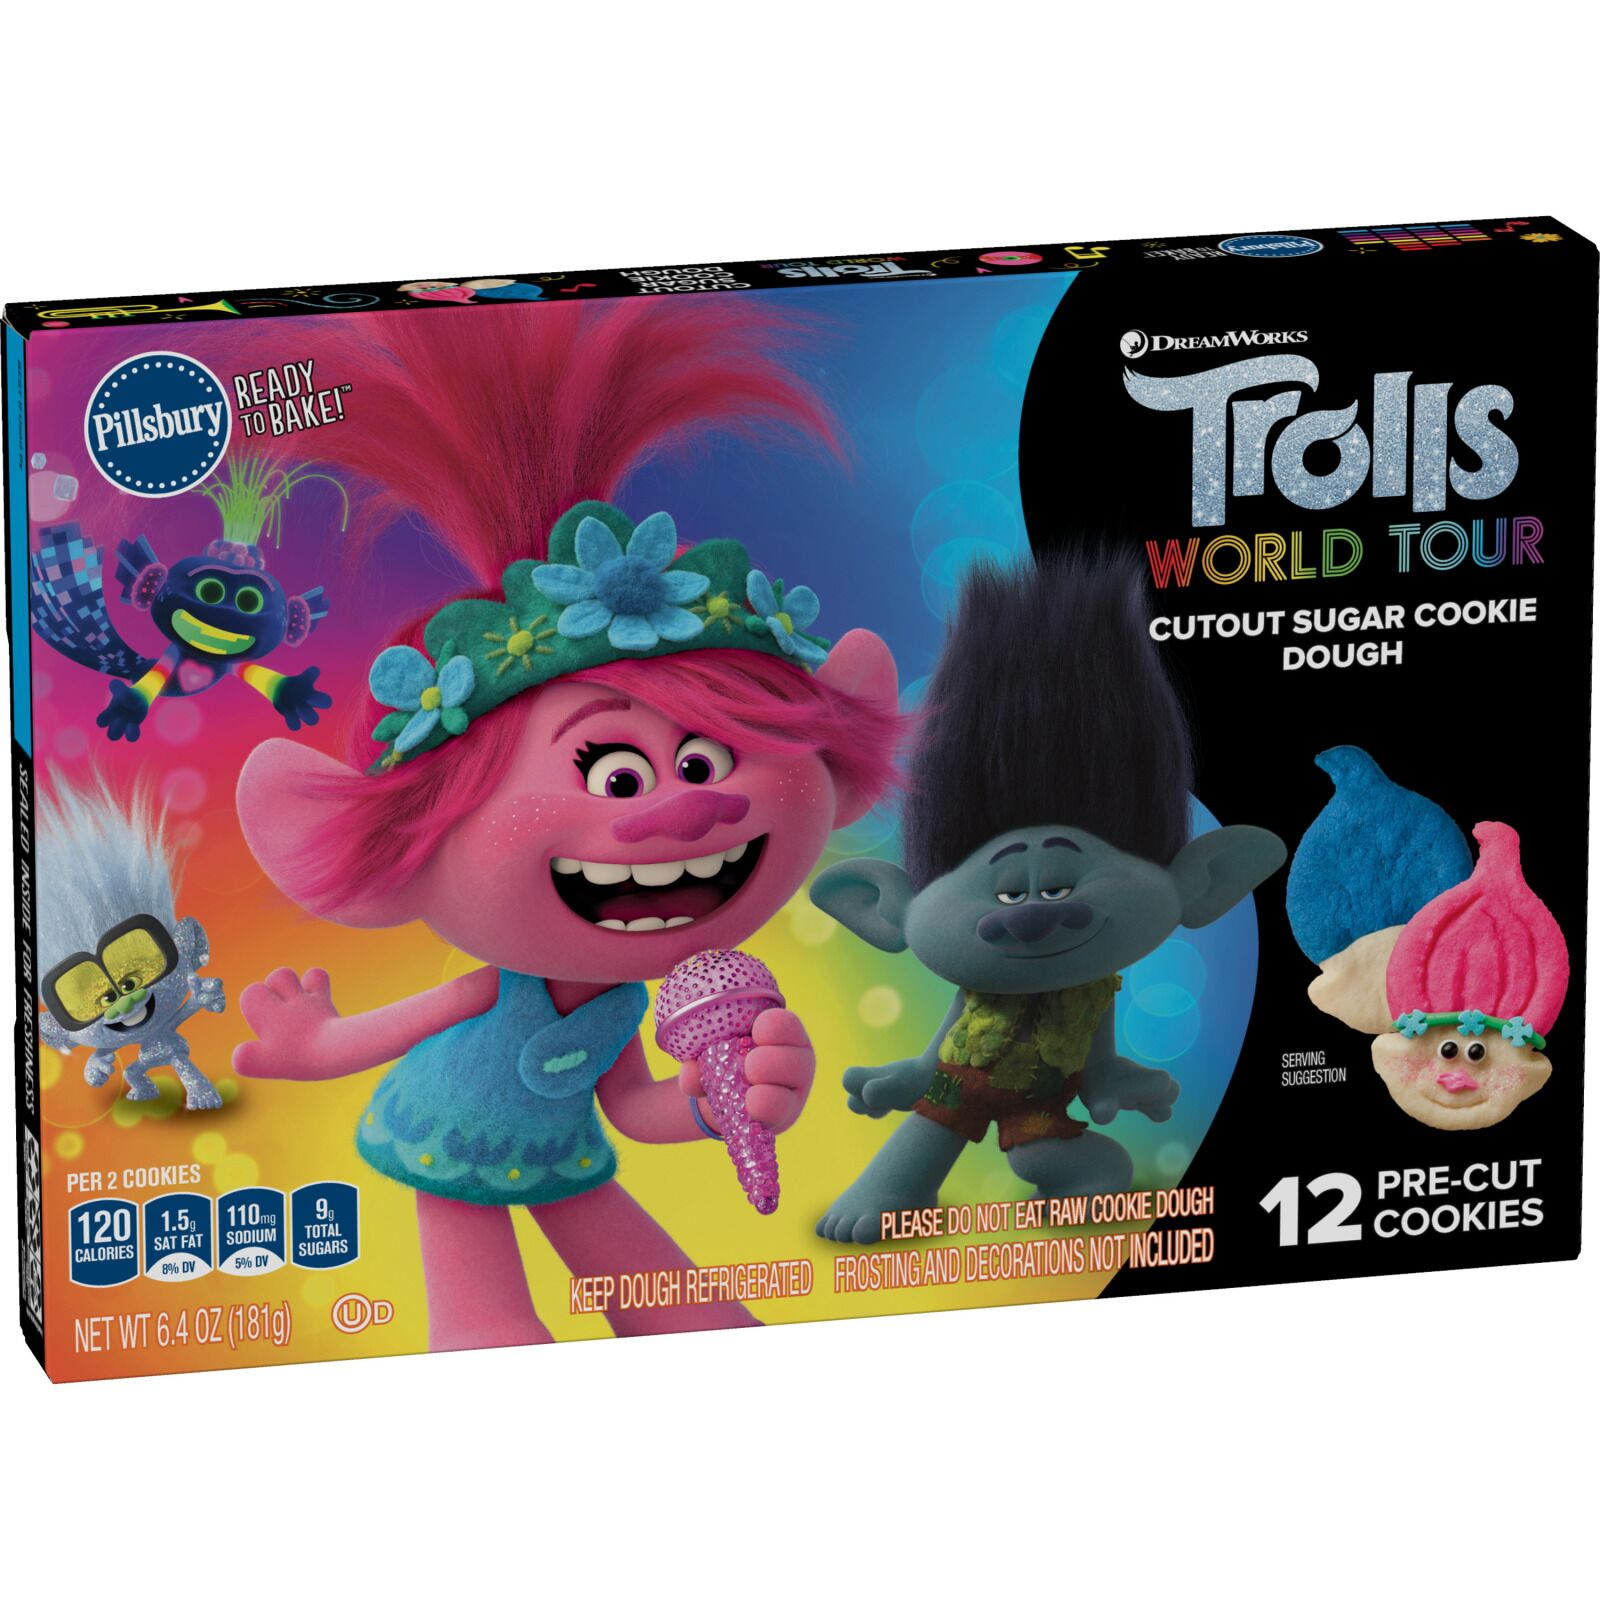 Pillsbury gets colorful with Limited Edition Trolls Sugar Cookie Dough